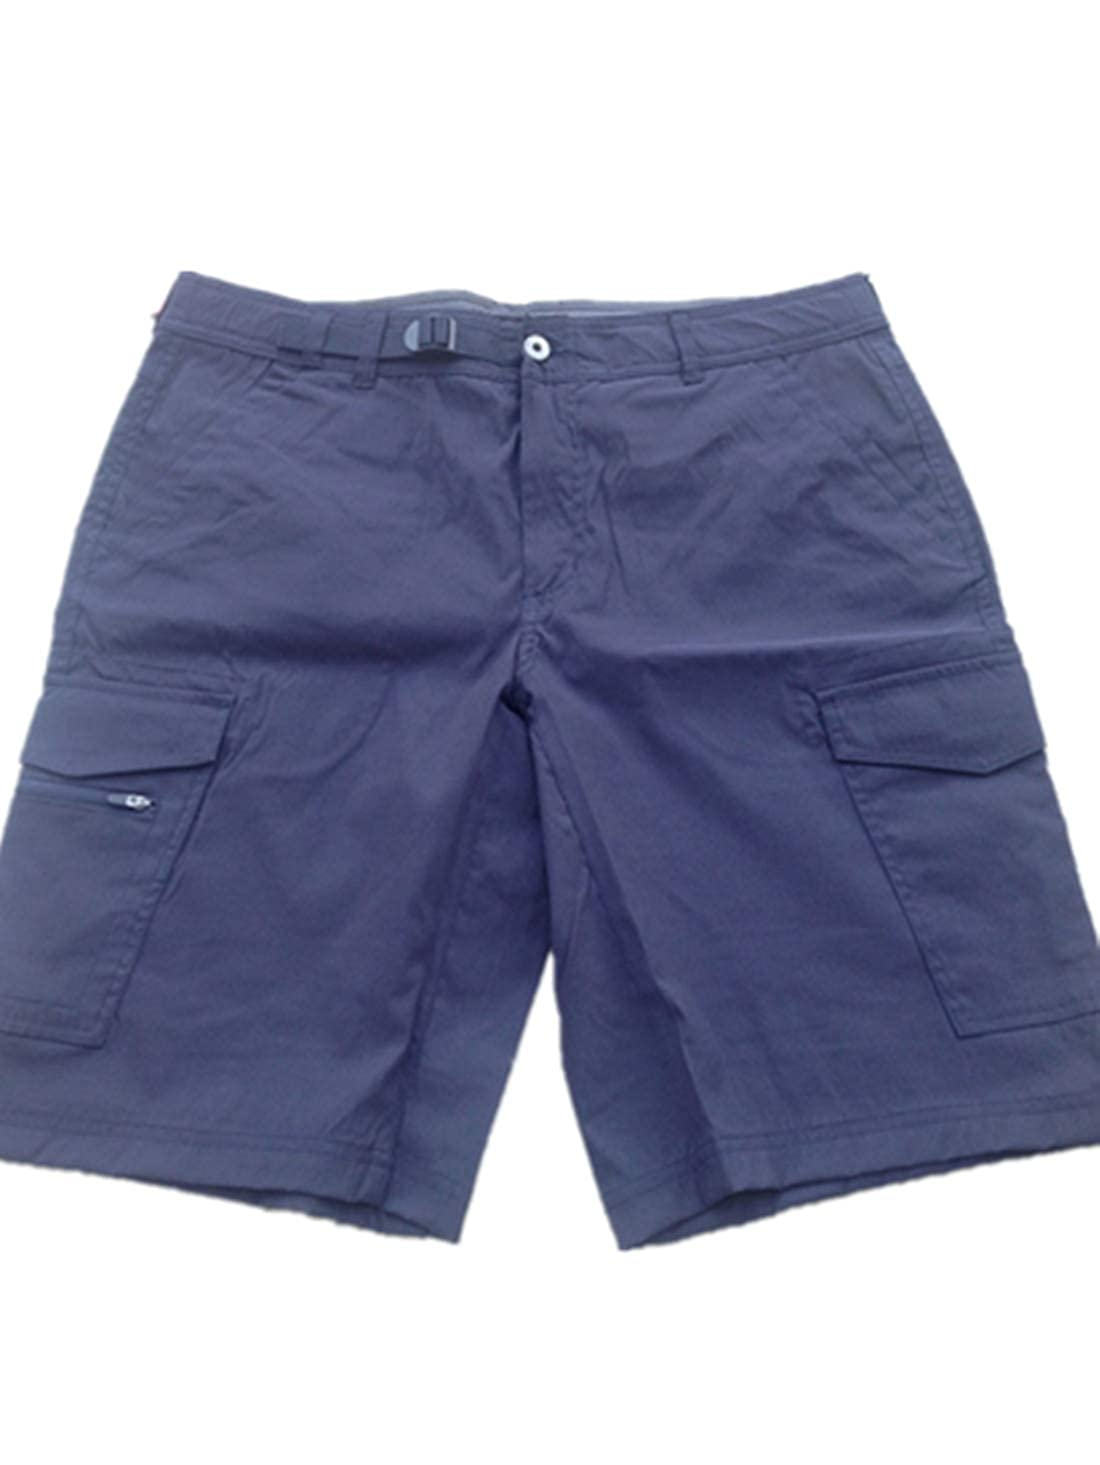 BC Clothing Men's Expedition Stretch Cargo Shorts, Variety